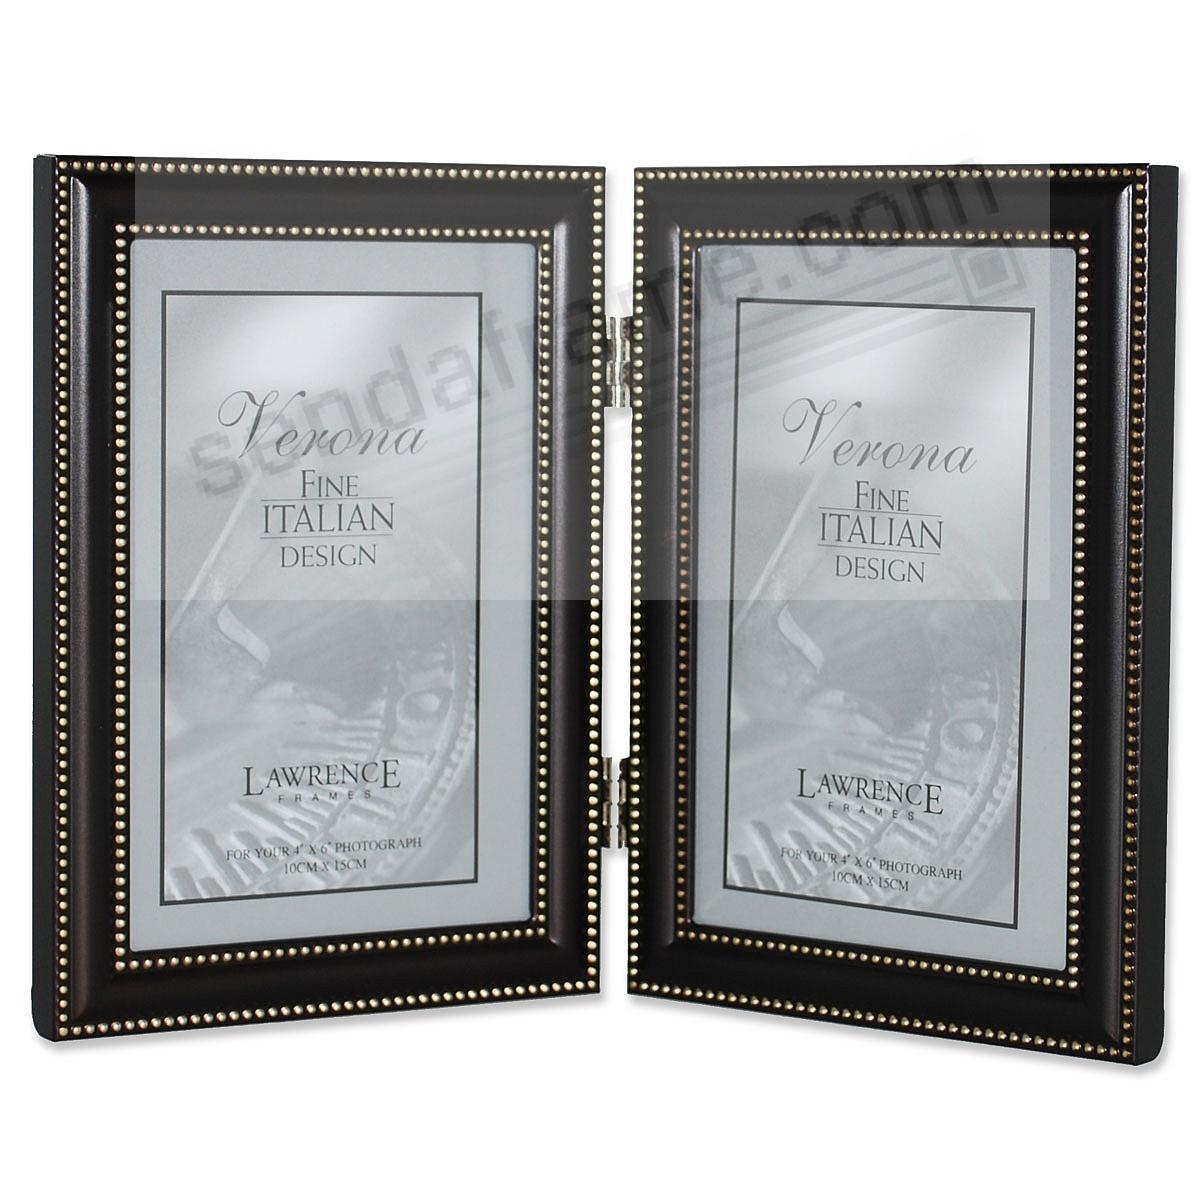 Hard To Find Hinged Double 4x6 Frame In Oil Rubbed Bronze With